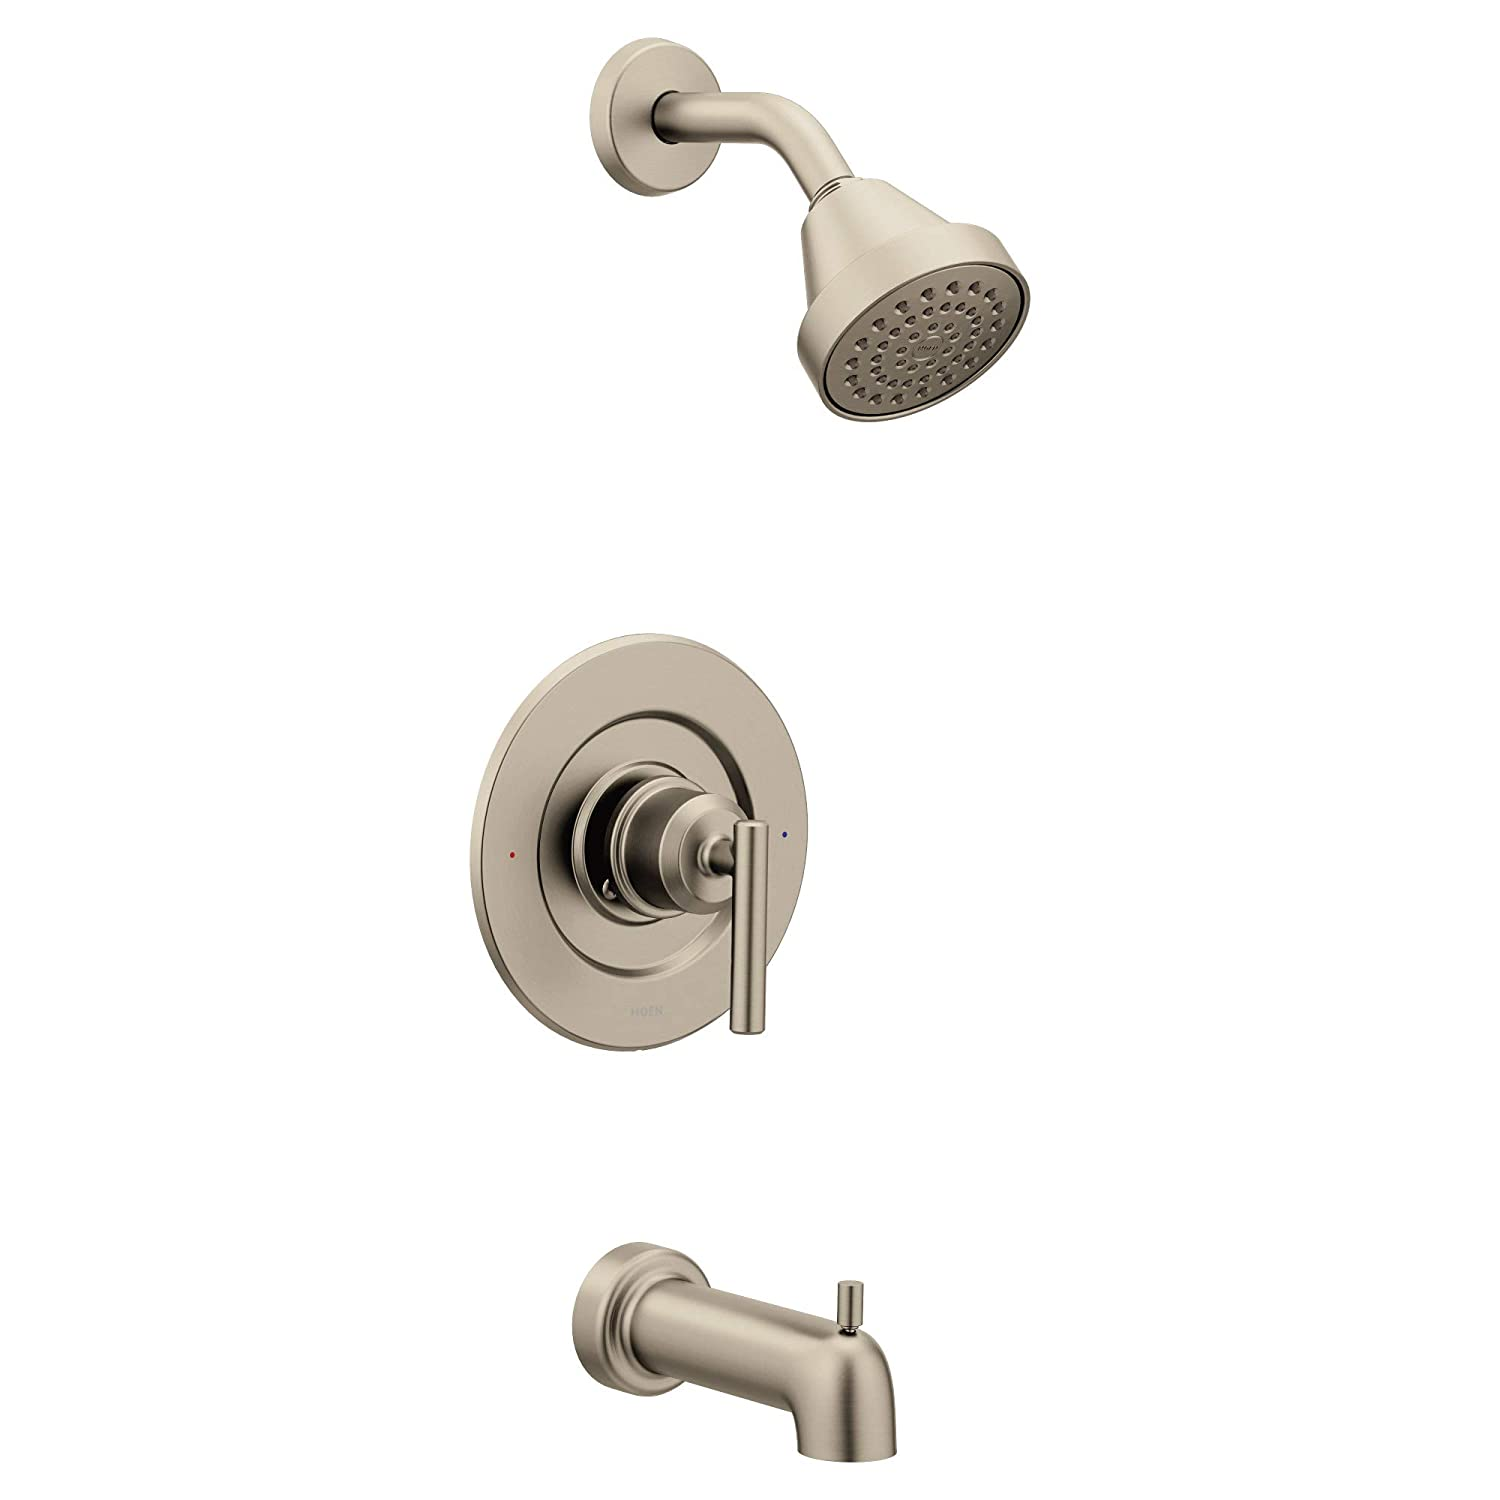 Moen T2903EPBN Gibson Posi-Temp Pressure Balancing Eco-Performance Modern Tub and Shower Trim, Valve Required, Brushed Nickel